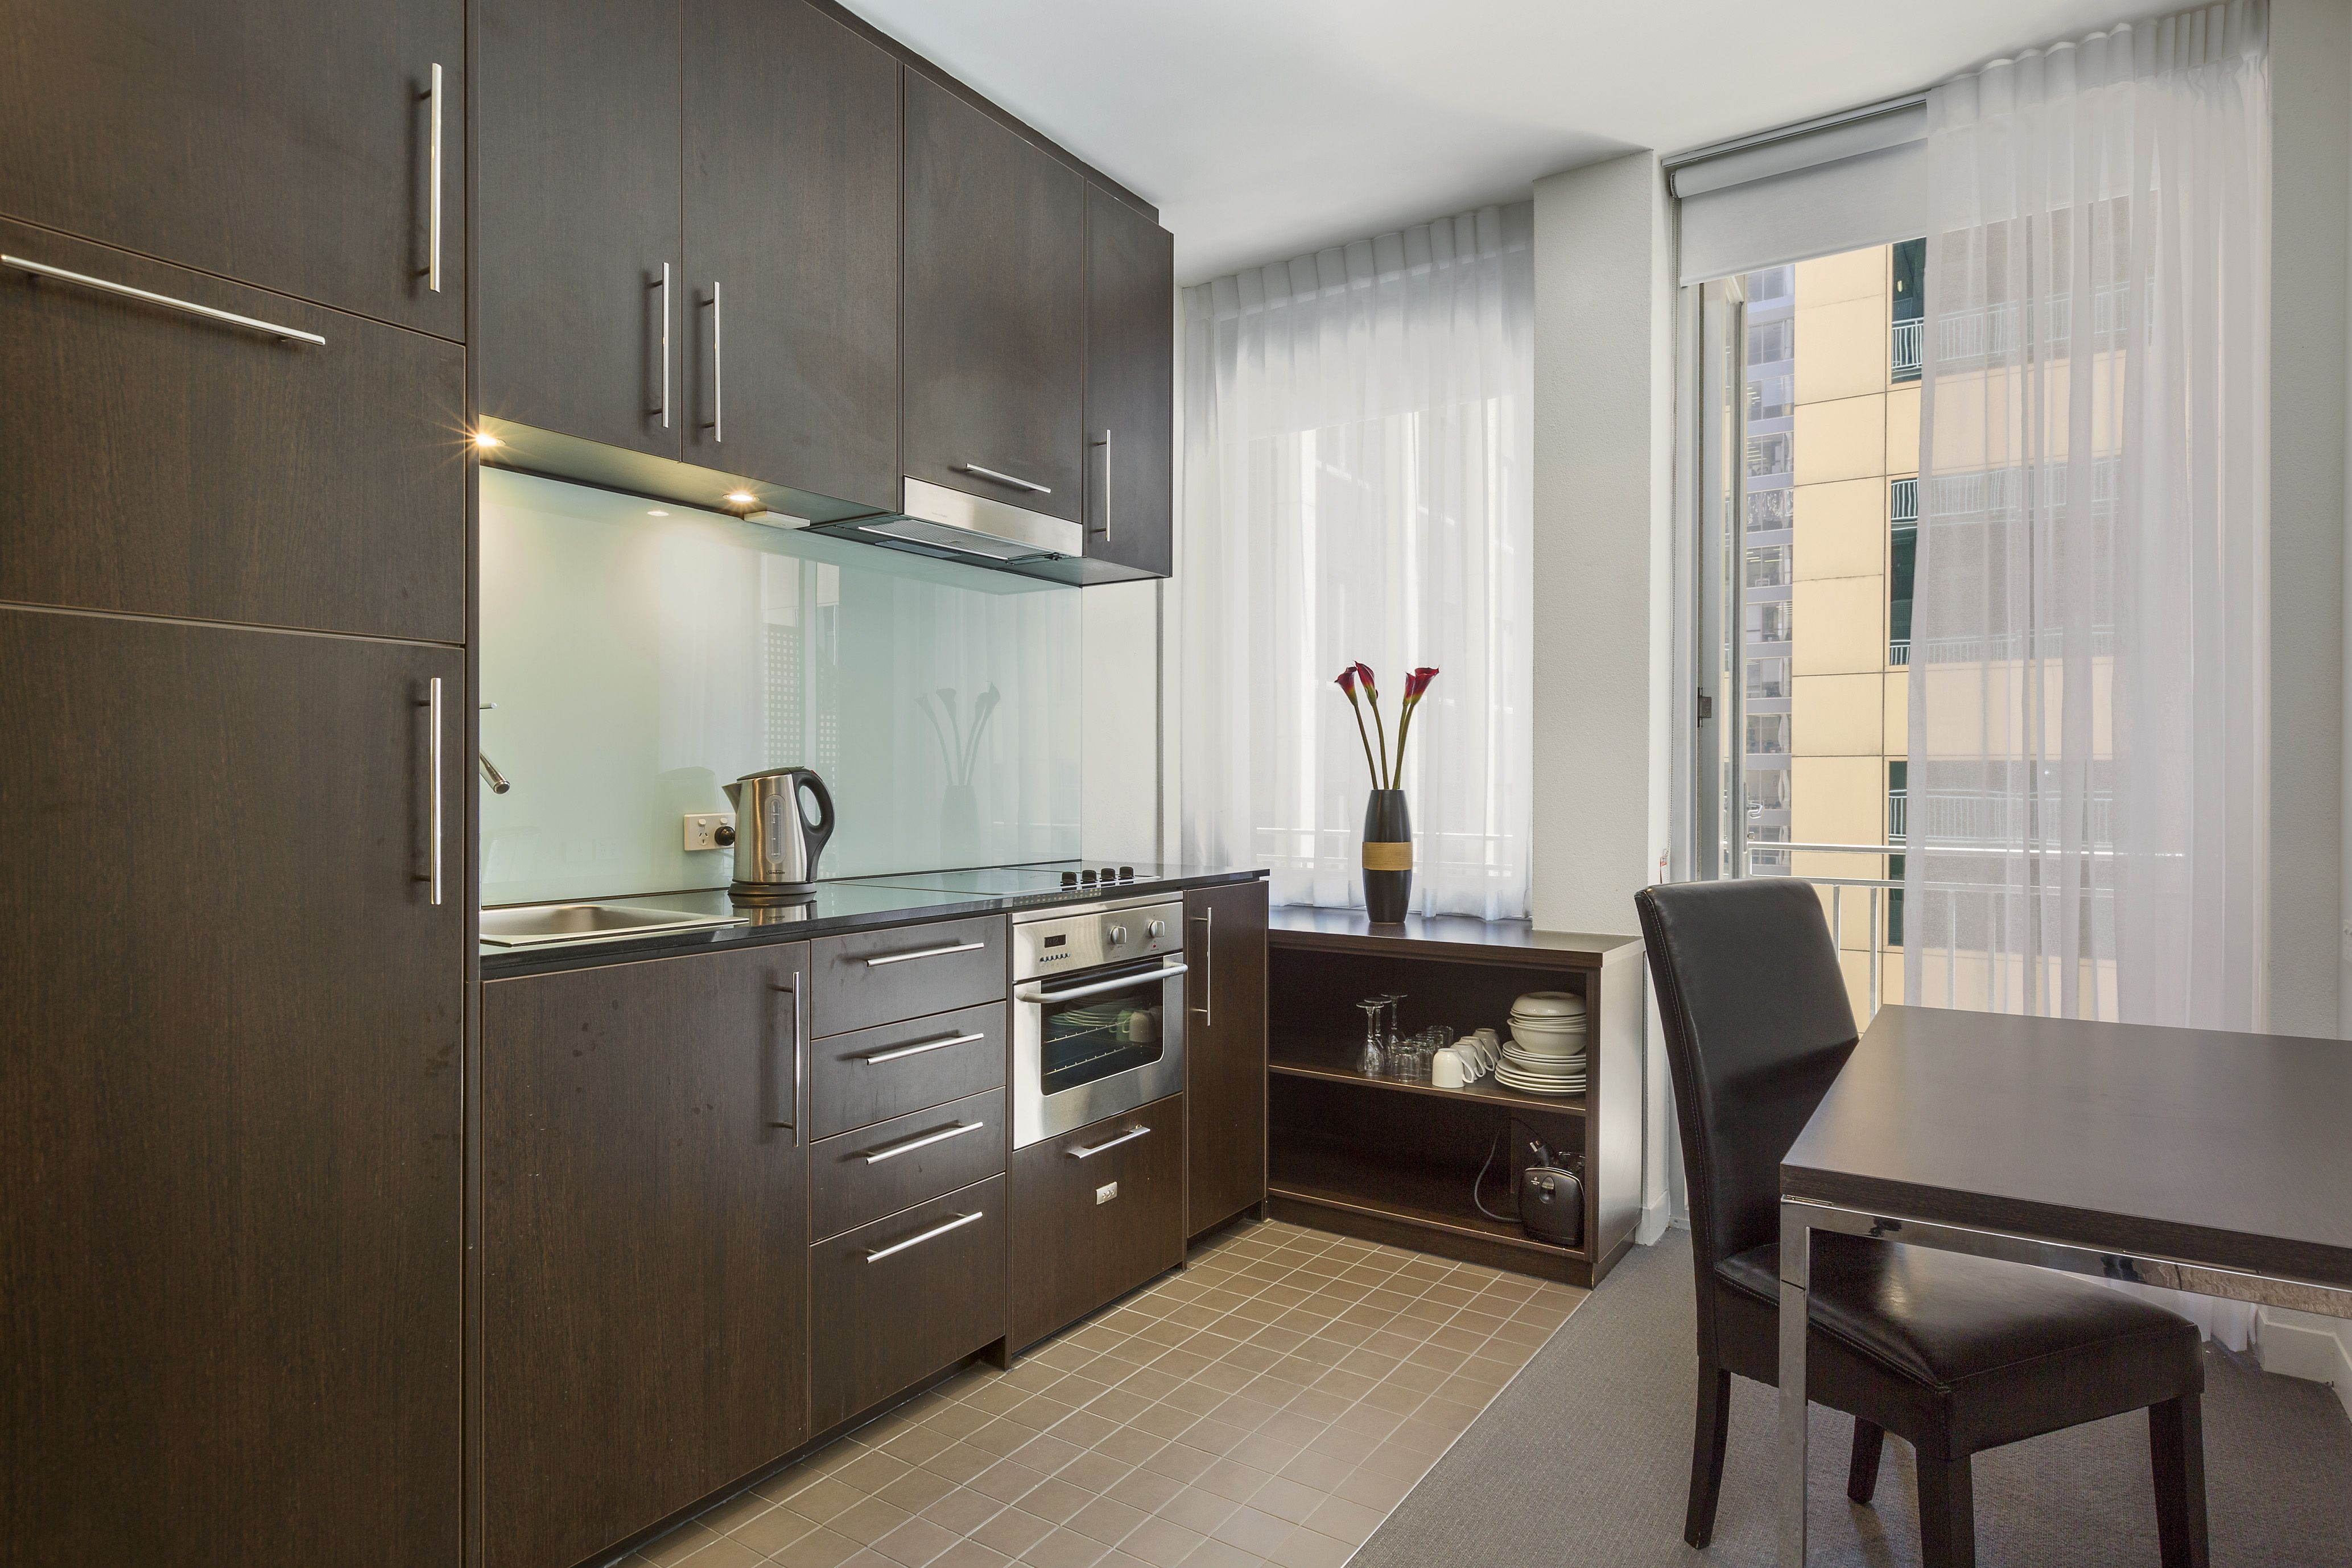 Kitchen at 480 Collins Street, Melbourne (With images